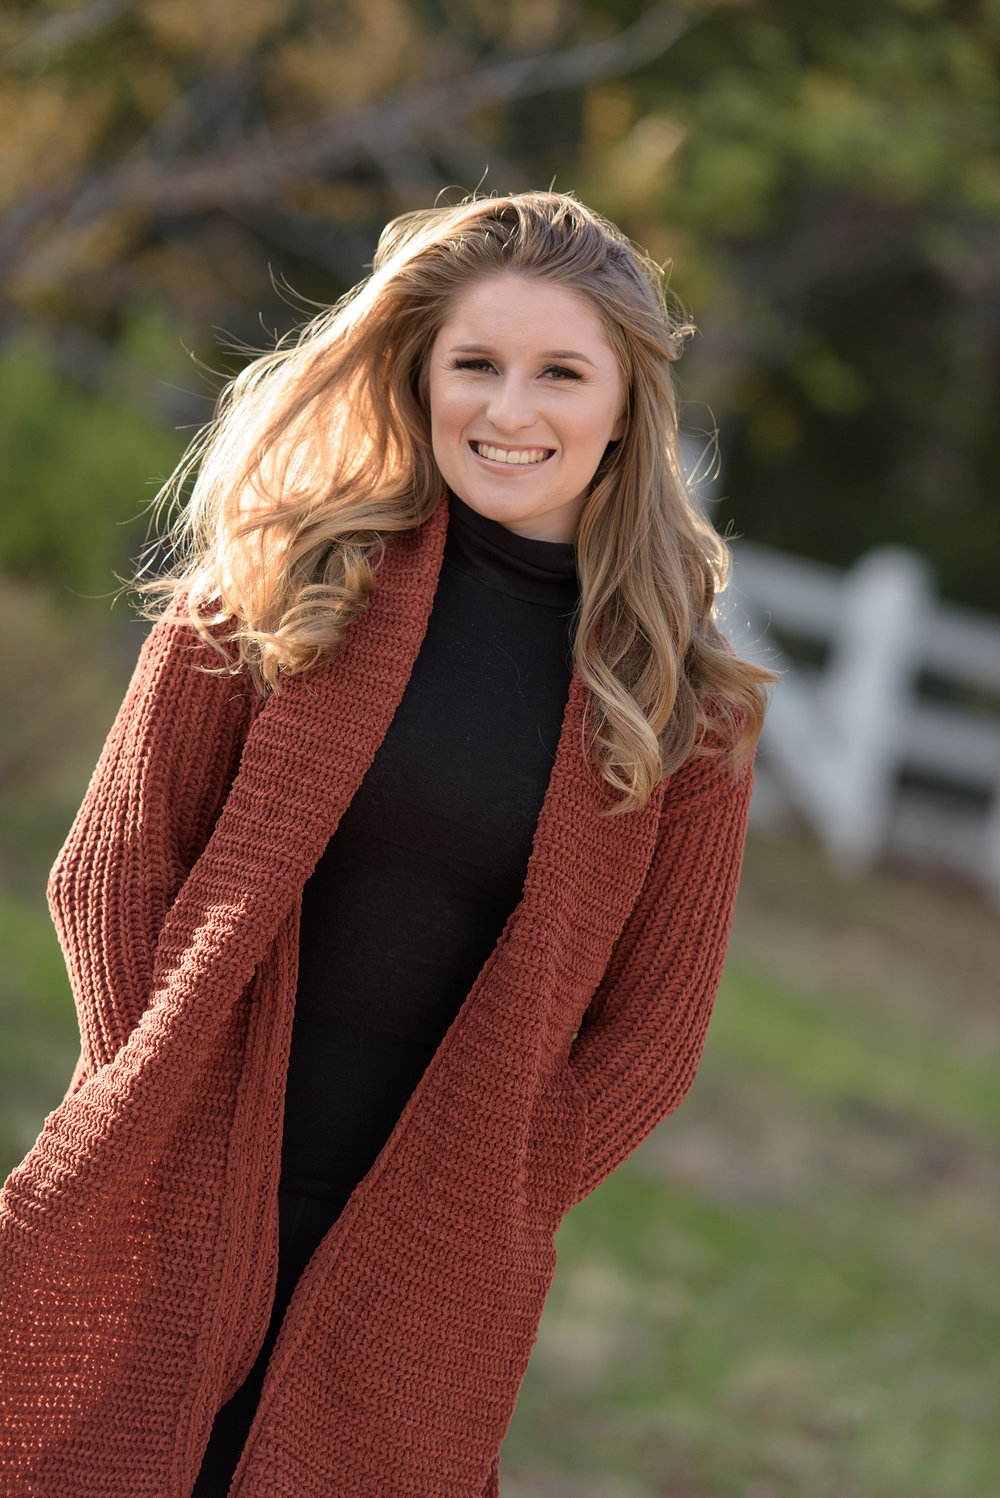 Gorgeous high school senior photos back lit by some late afternoon sun on a crisp Autumn day.